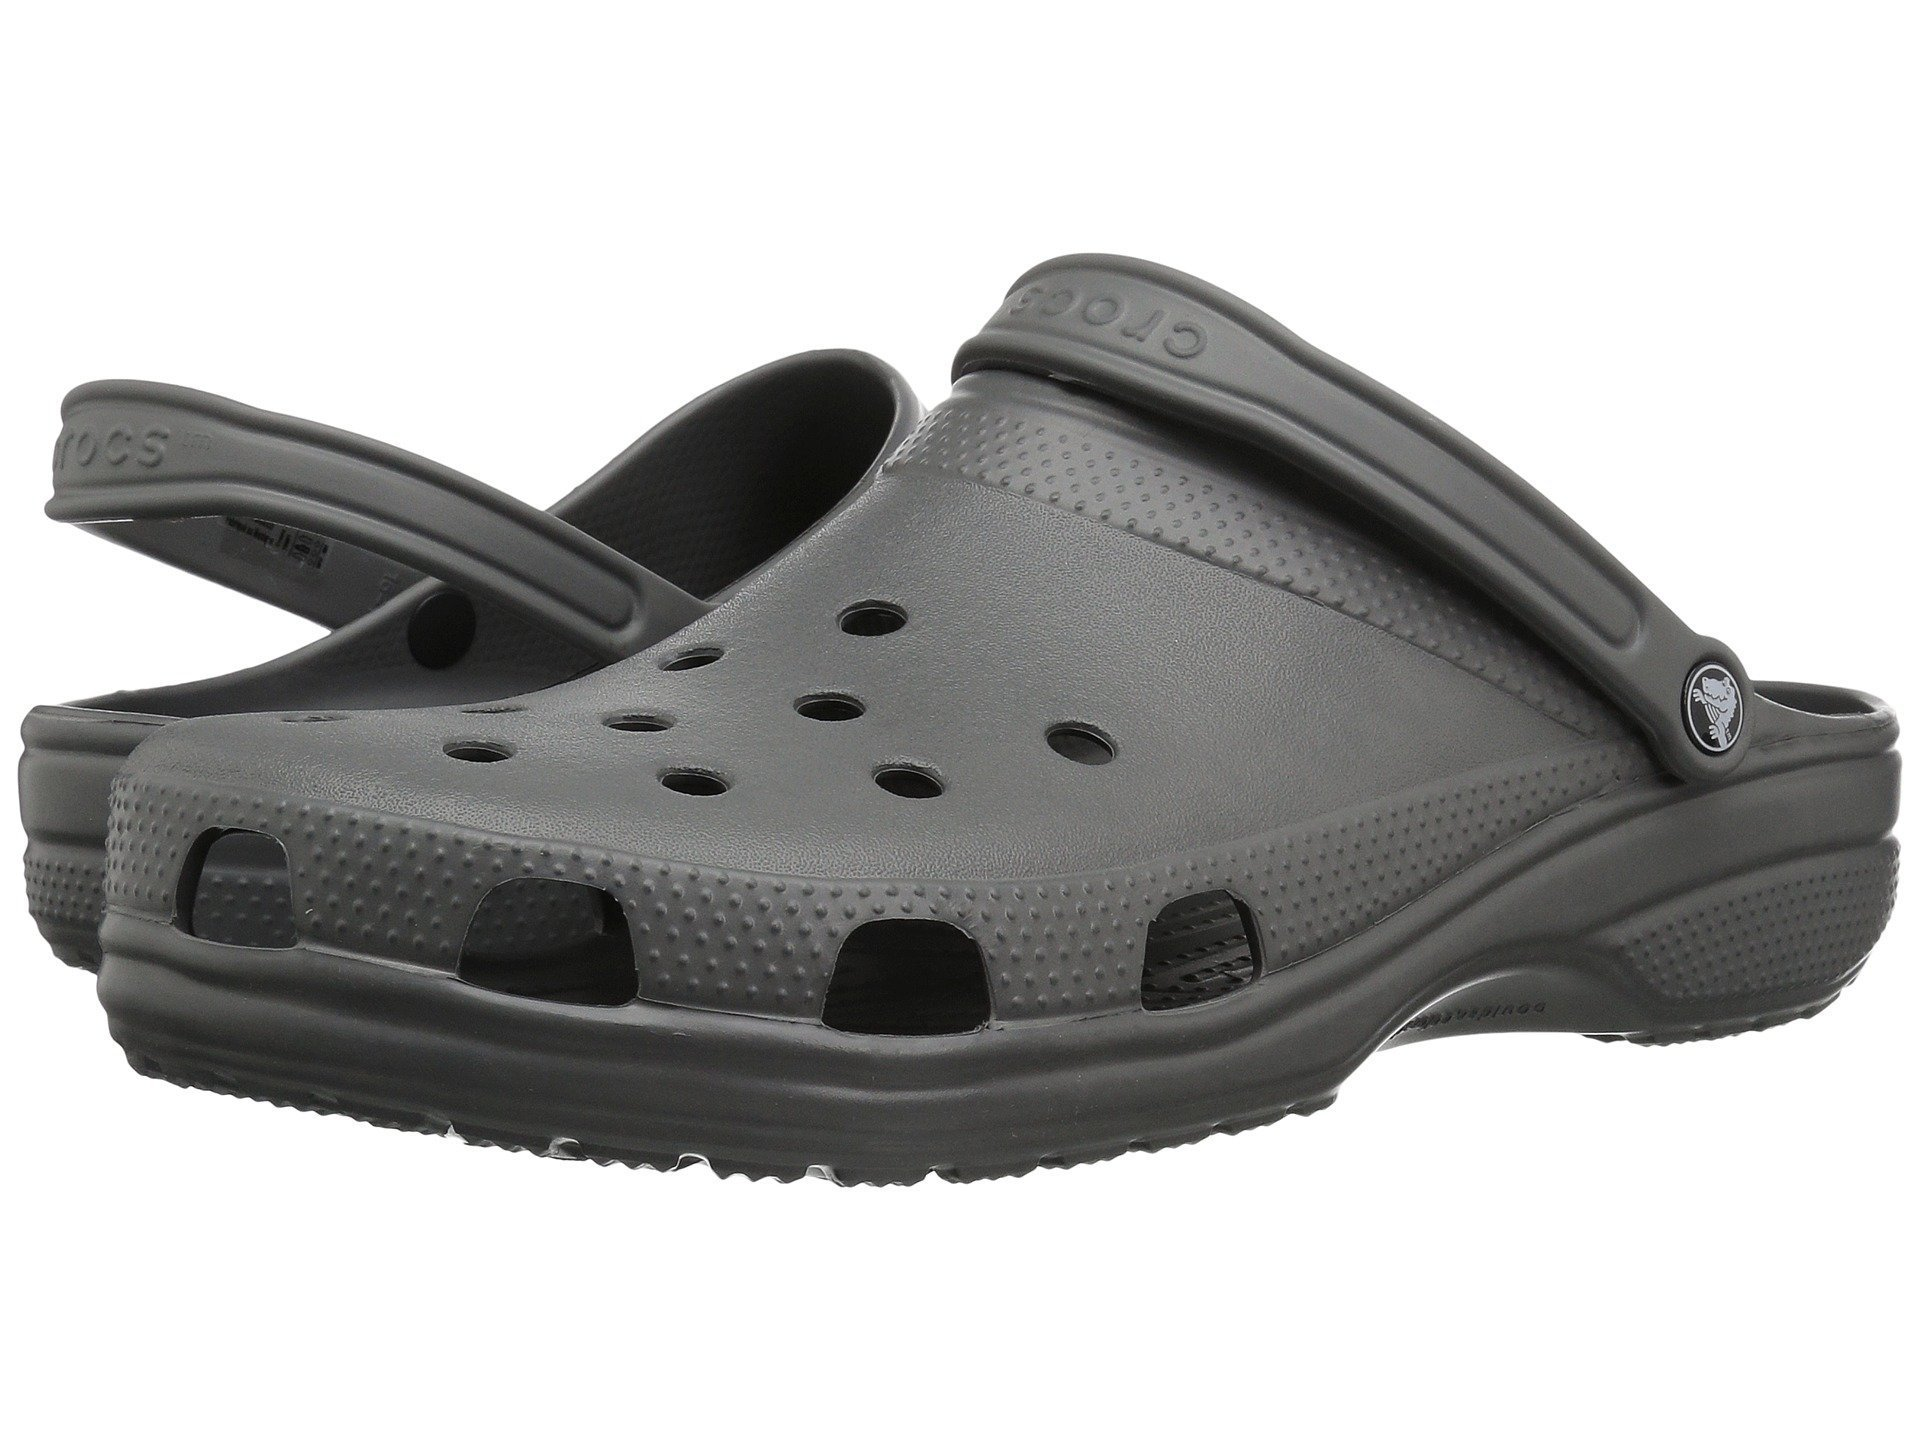 Crocs Classic Mule Slate Grey - 7 US Men/ 9 US Women M US